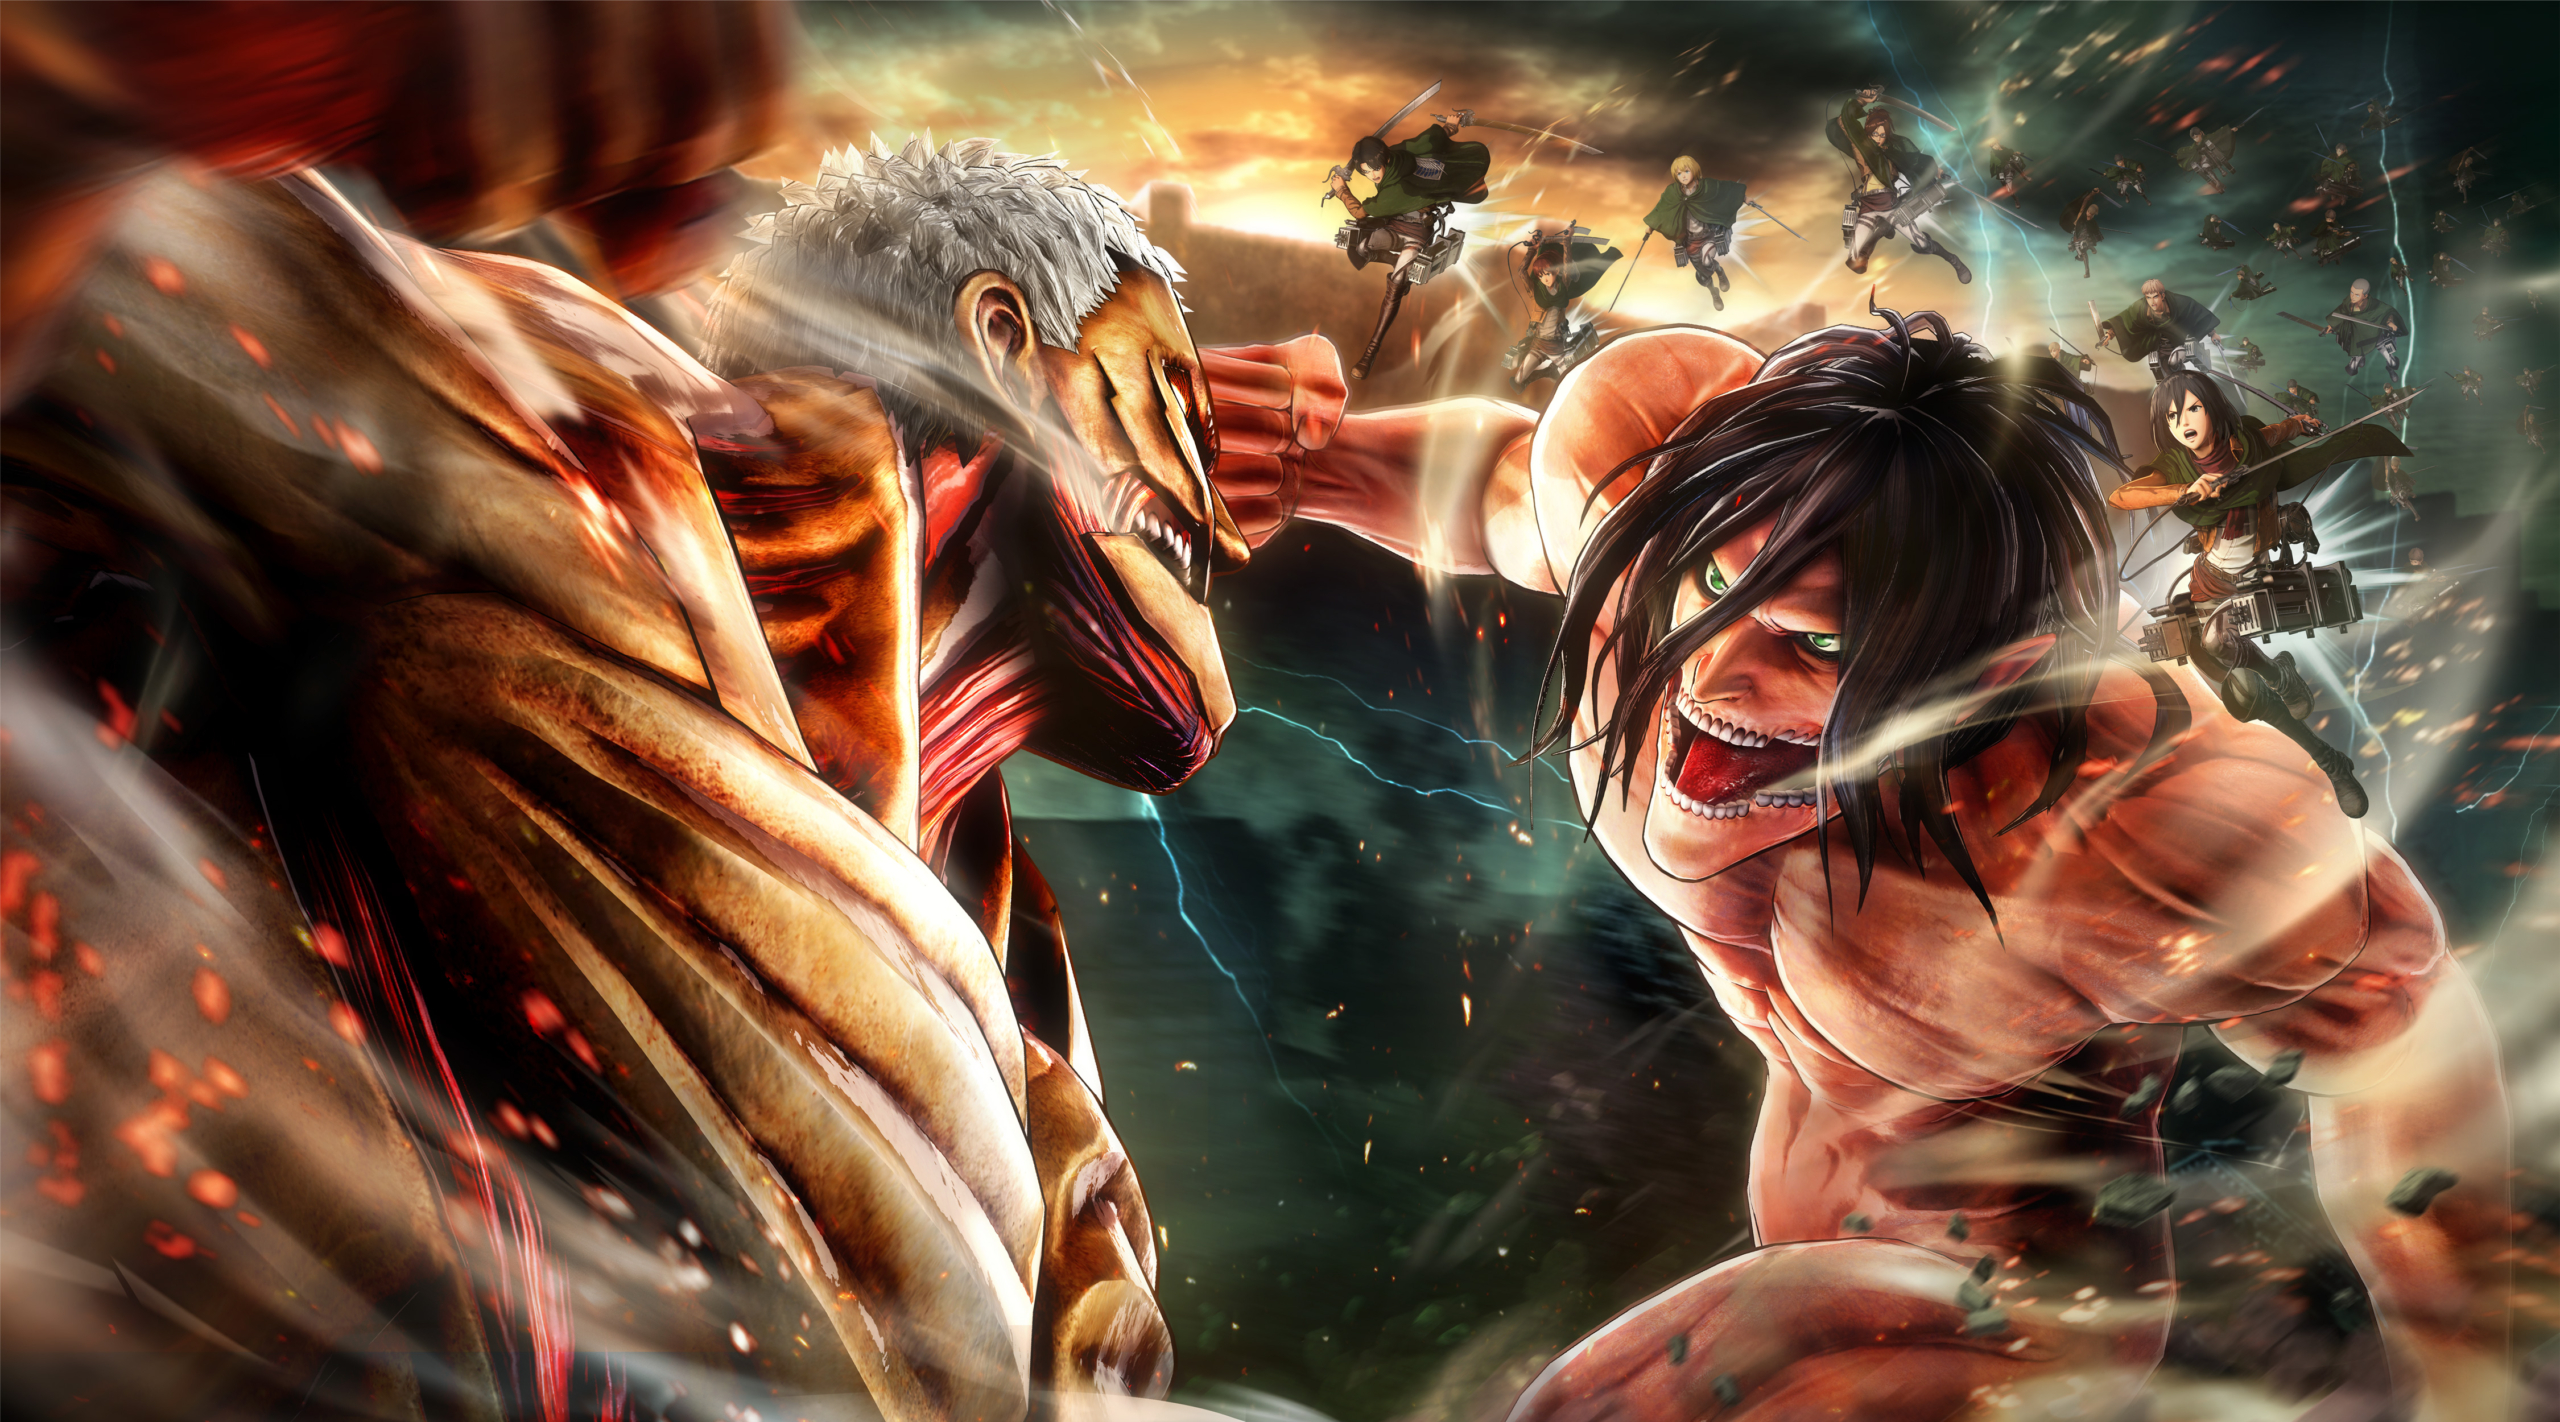 Download the Best Attack on Titan Wallpaper